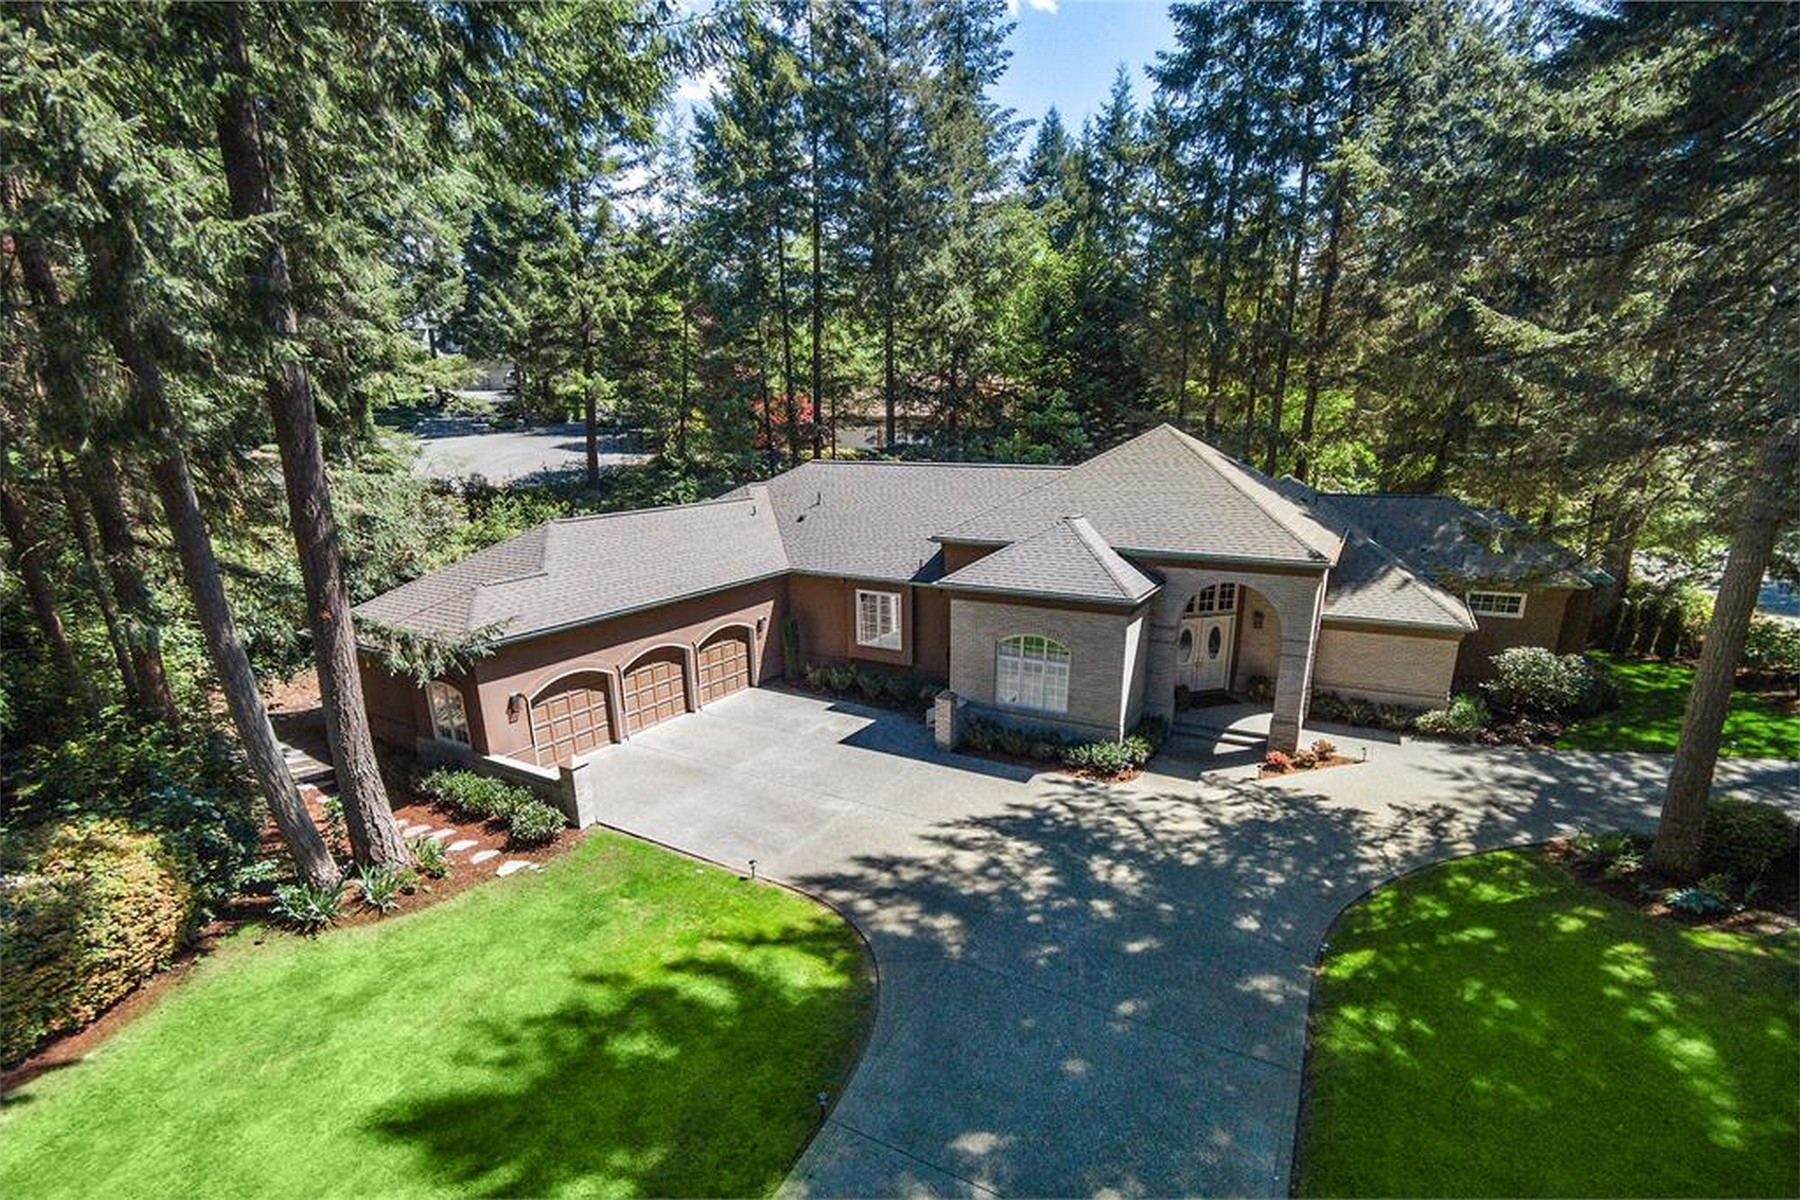 Single Family Home for Sale at Stunning Canterwood Rambler 4815 Canterwood Dr NW Gig Harbor, Washington, 98332 United States